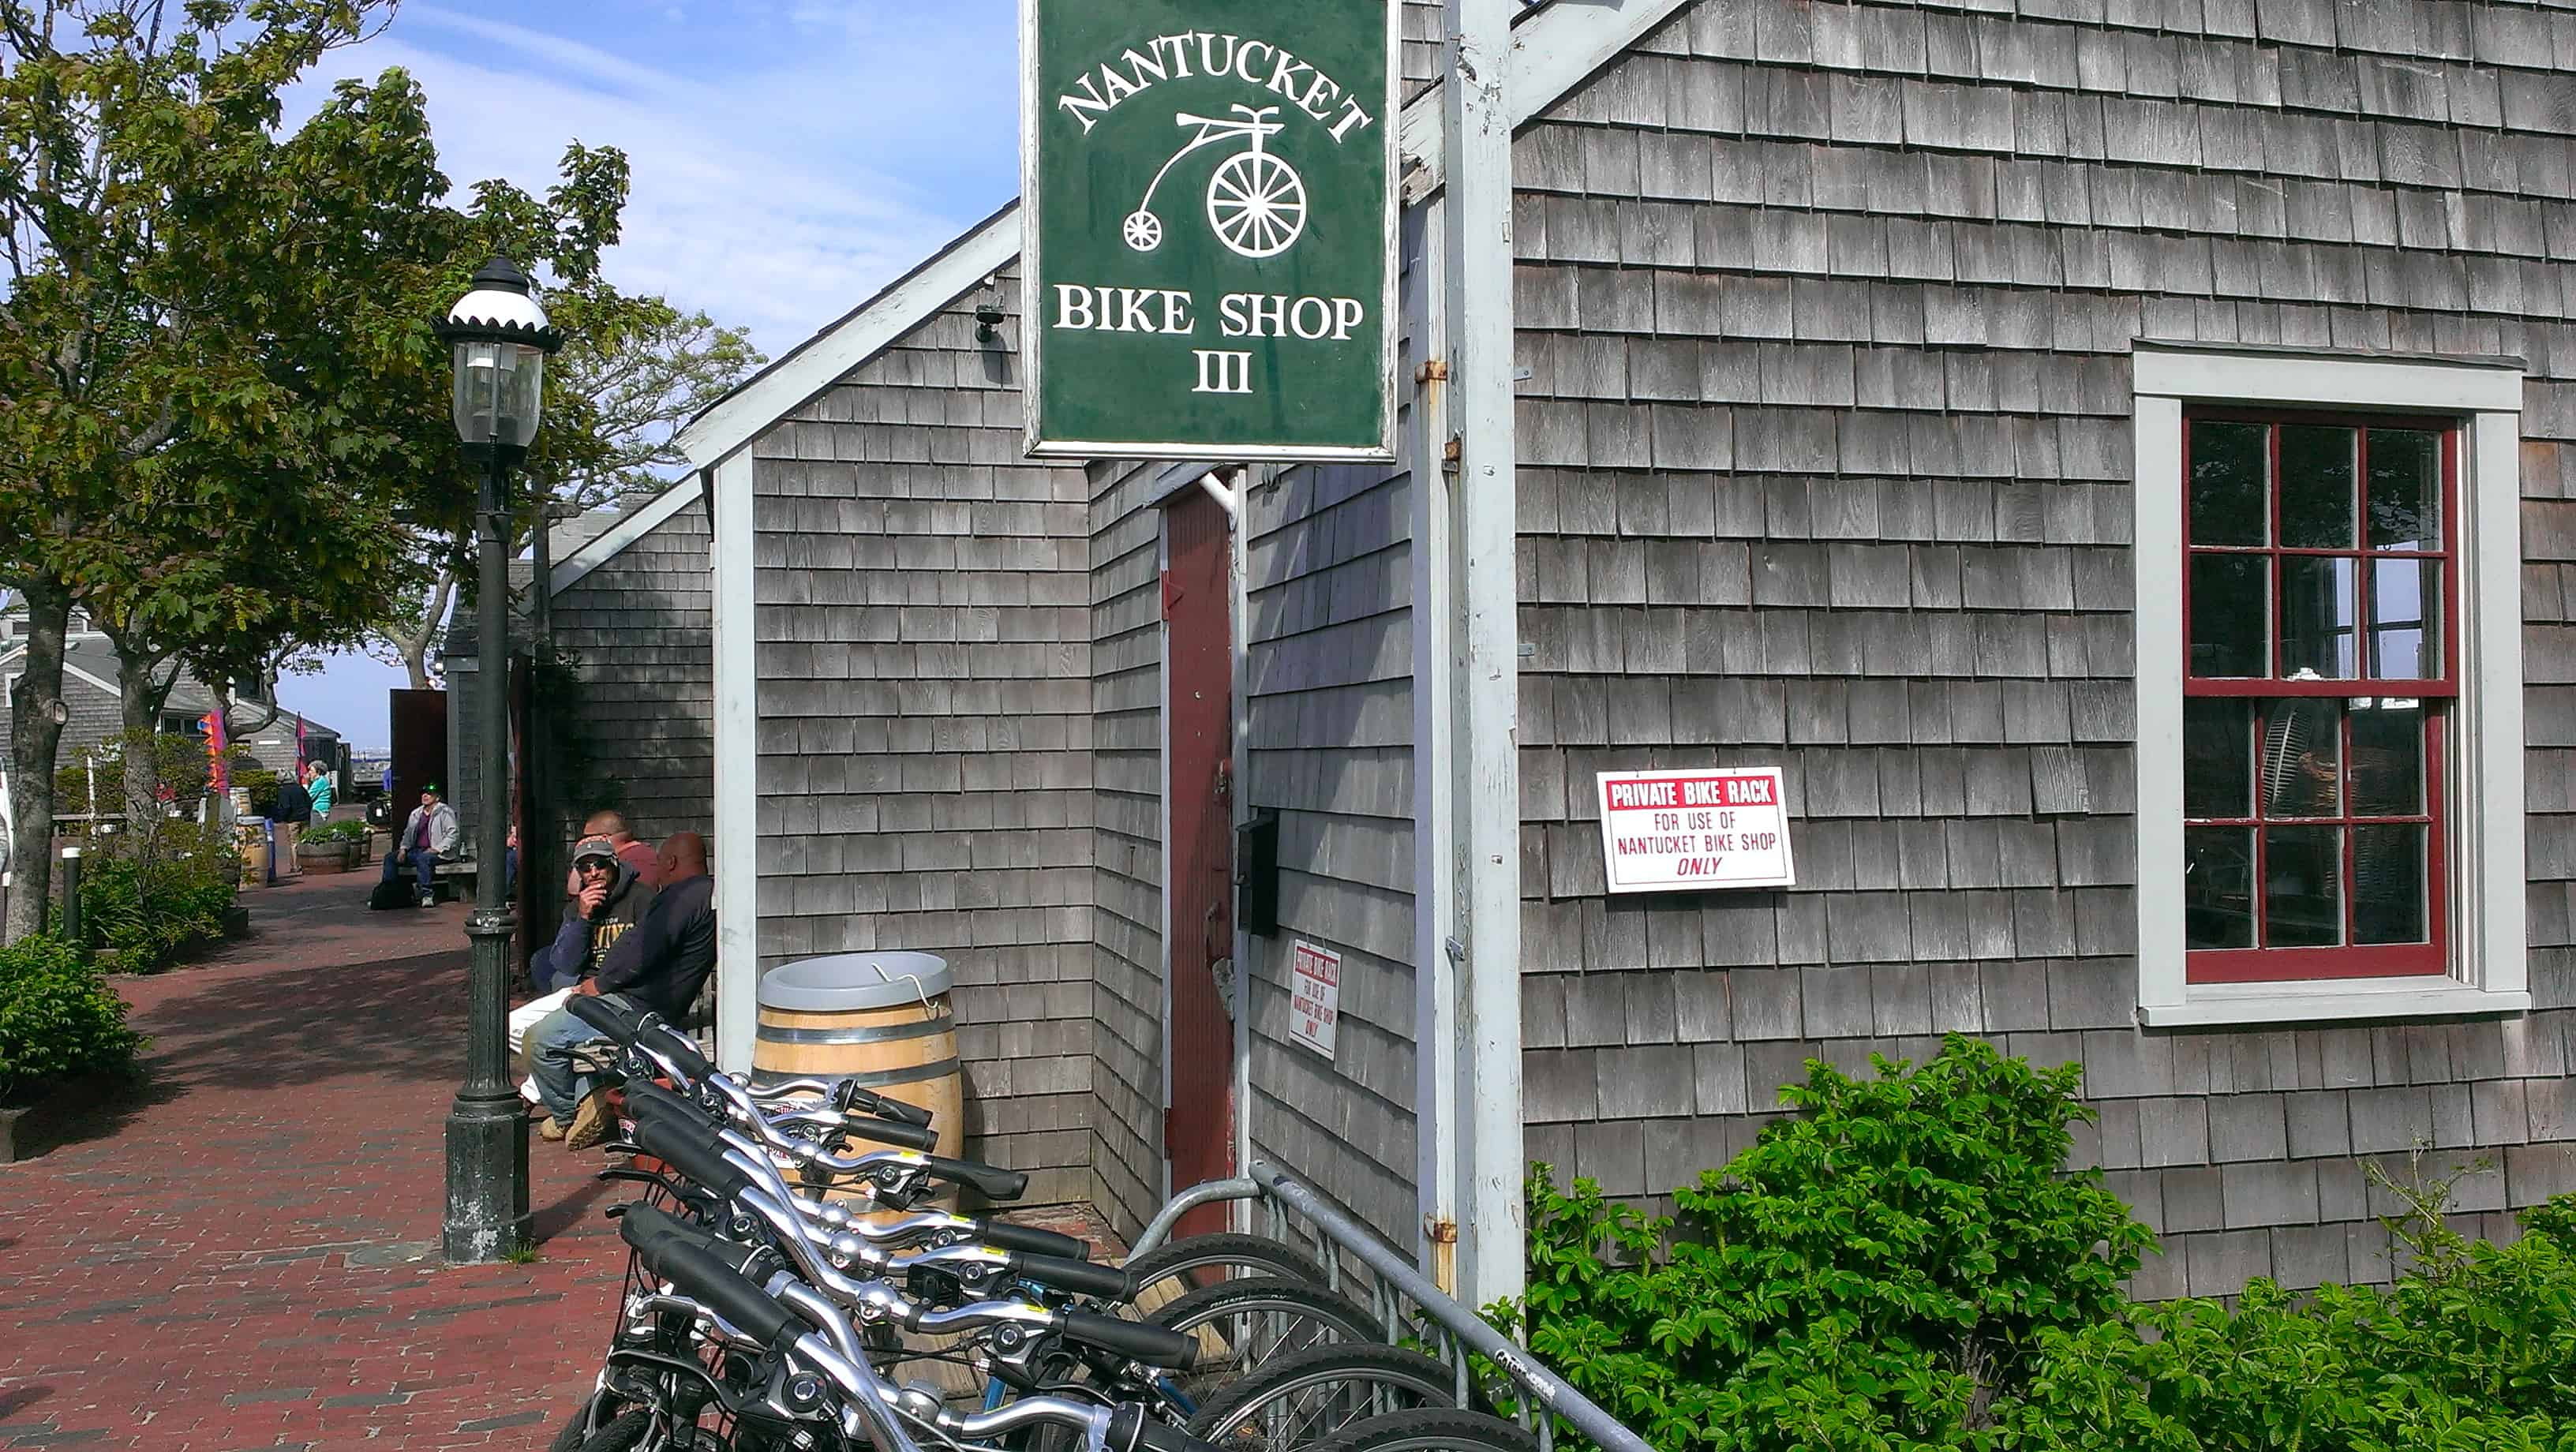 Cape Cod Vacation Ideas Part - 31: Cape Cod Vacation Ideas Nantucket